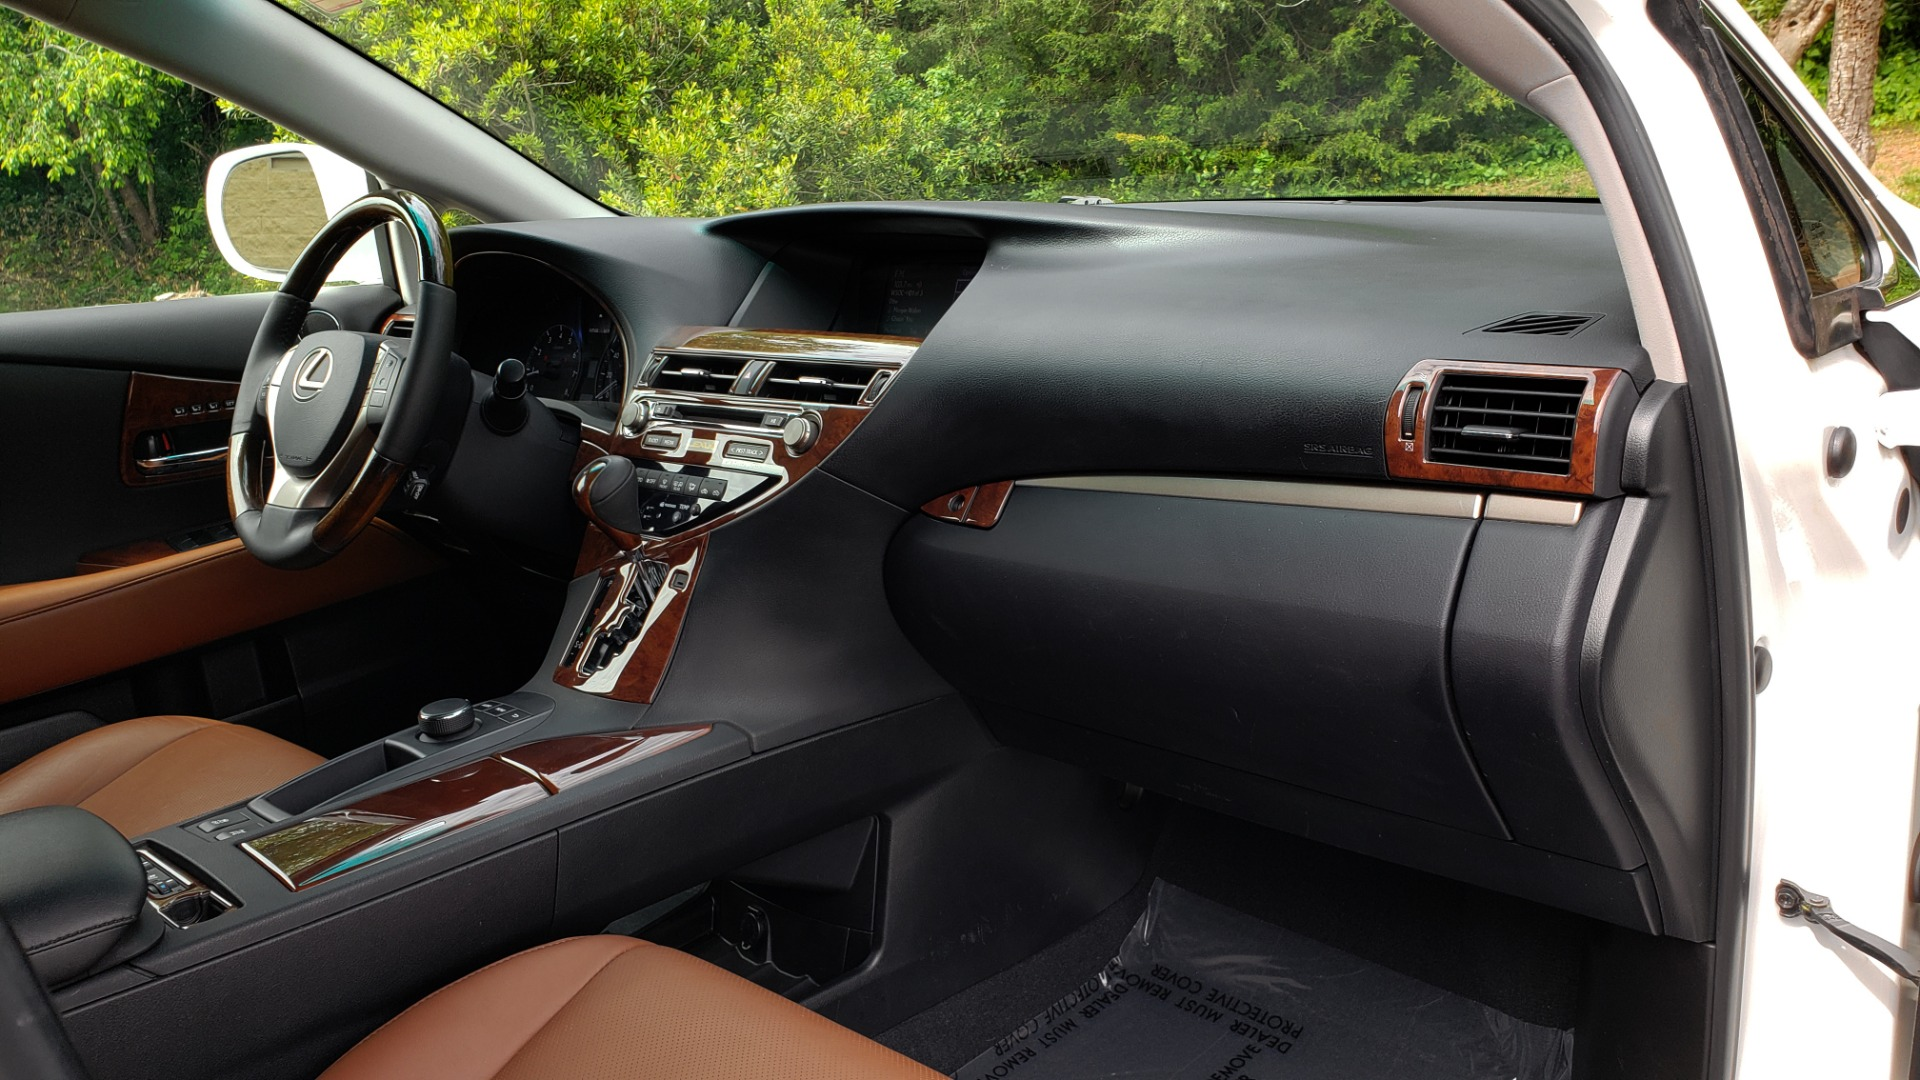 Used 2013 Lexus RX 350 PREMIUM PKG / SUNROOF / BSM / PARK ASST / REARVIEW for sale Sold at Formula Imports in Charlotte NC 28227 67